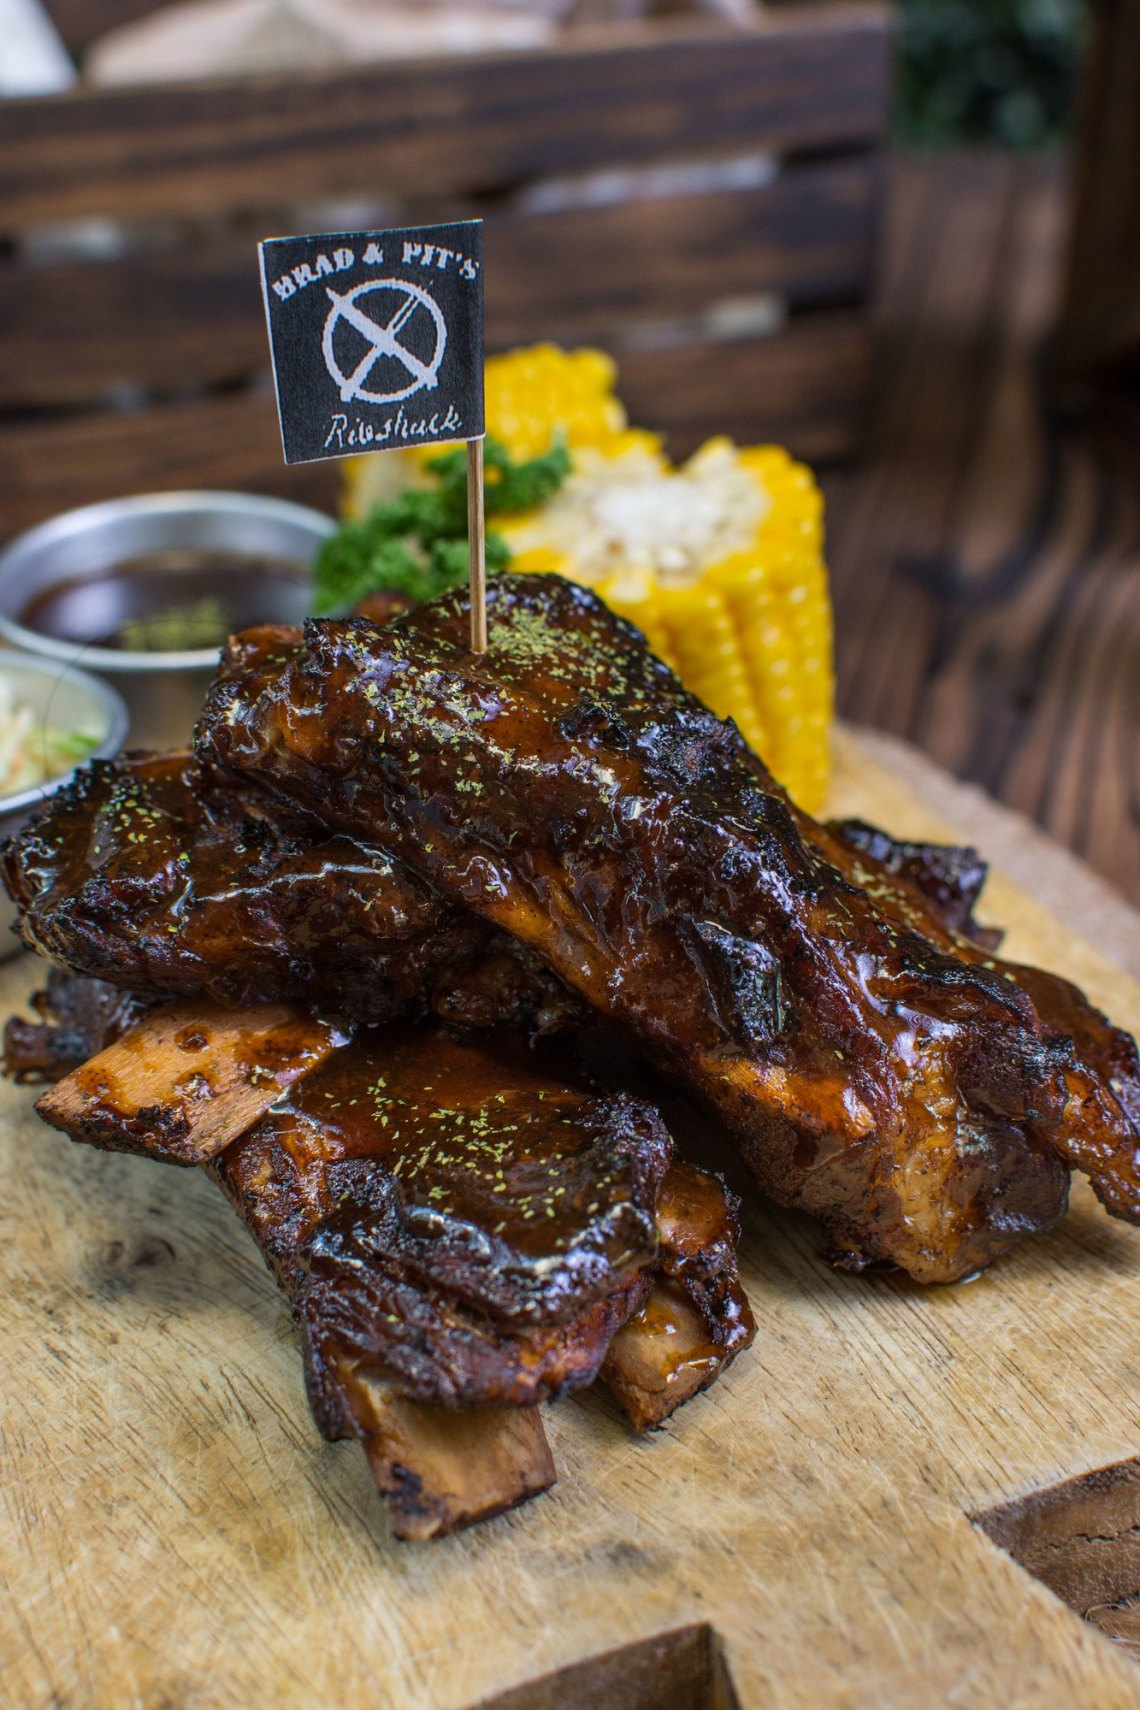 Ribs Frozen Packs (₱350 for a pack of 450grams). Good for 2-3 people